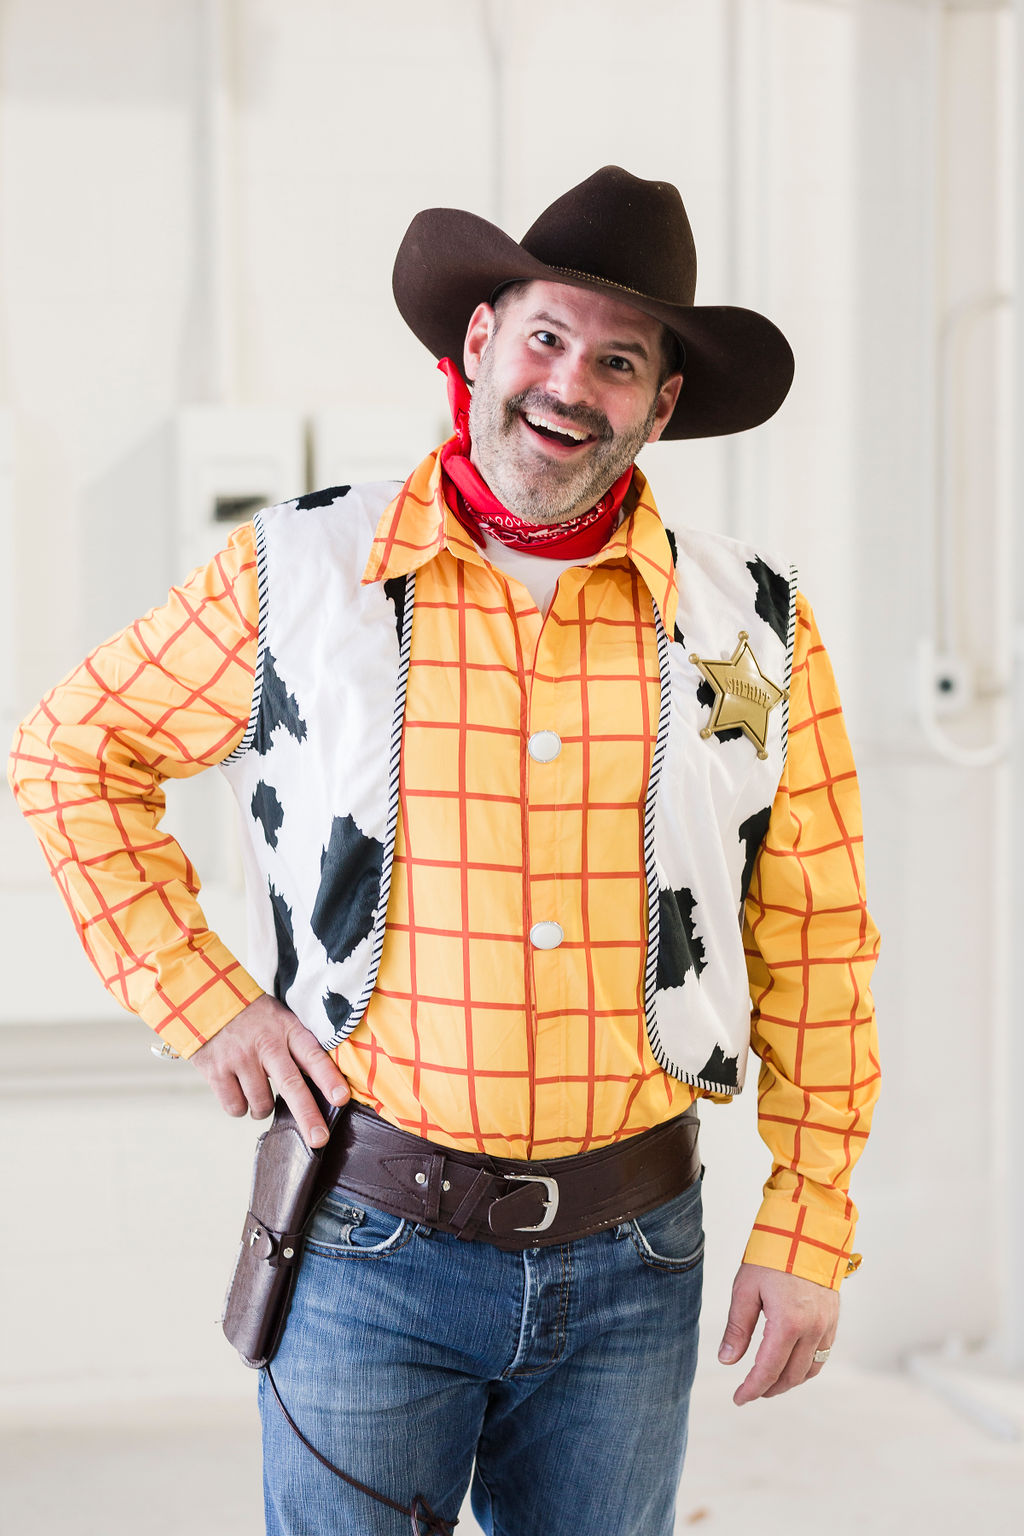 toy story halloween costumes-8